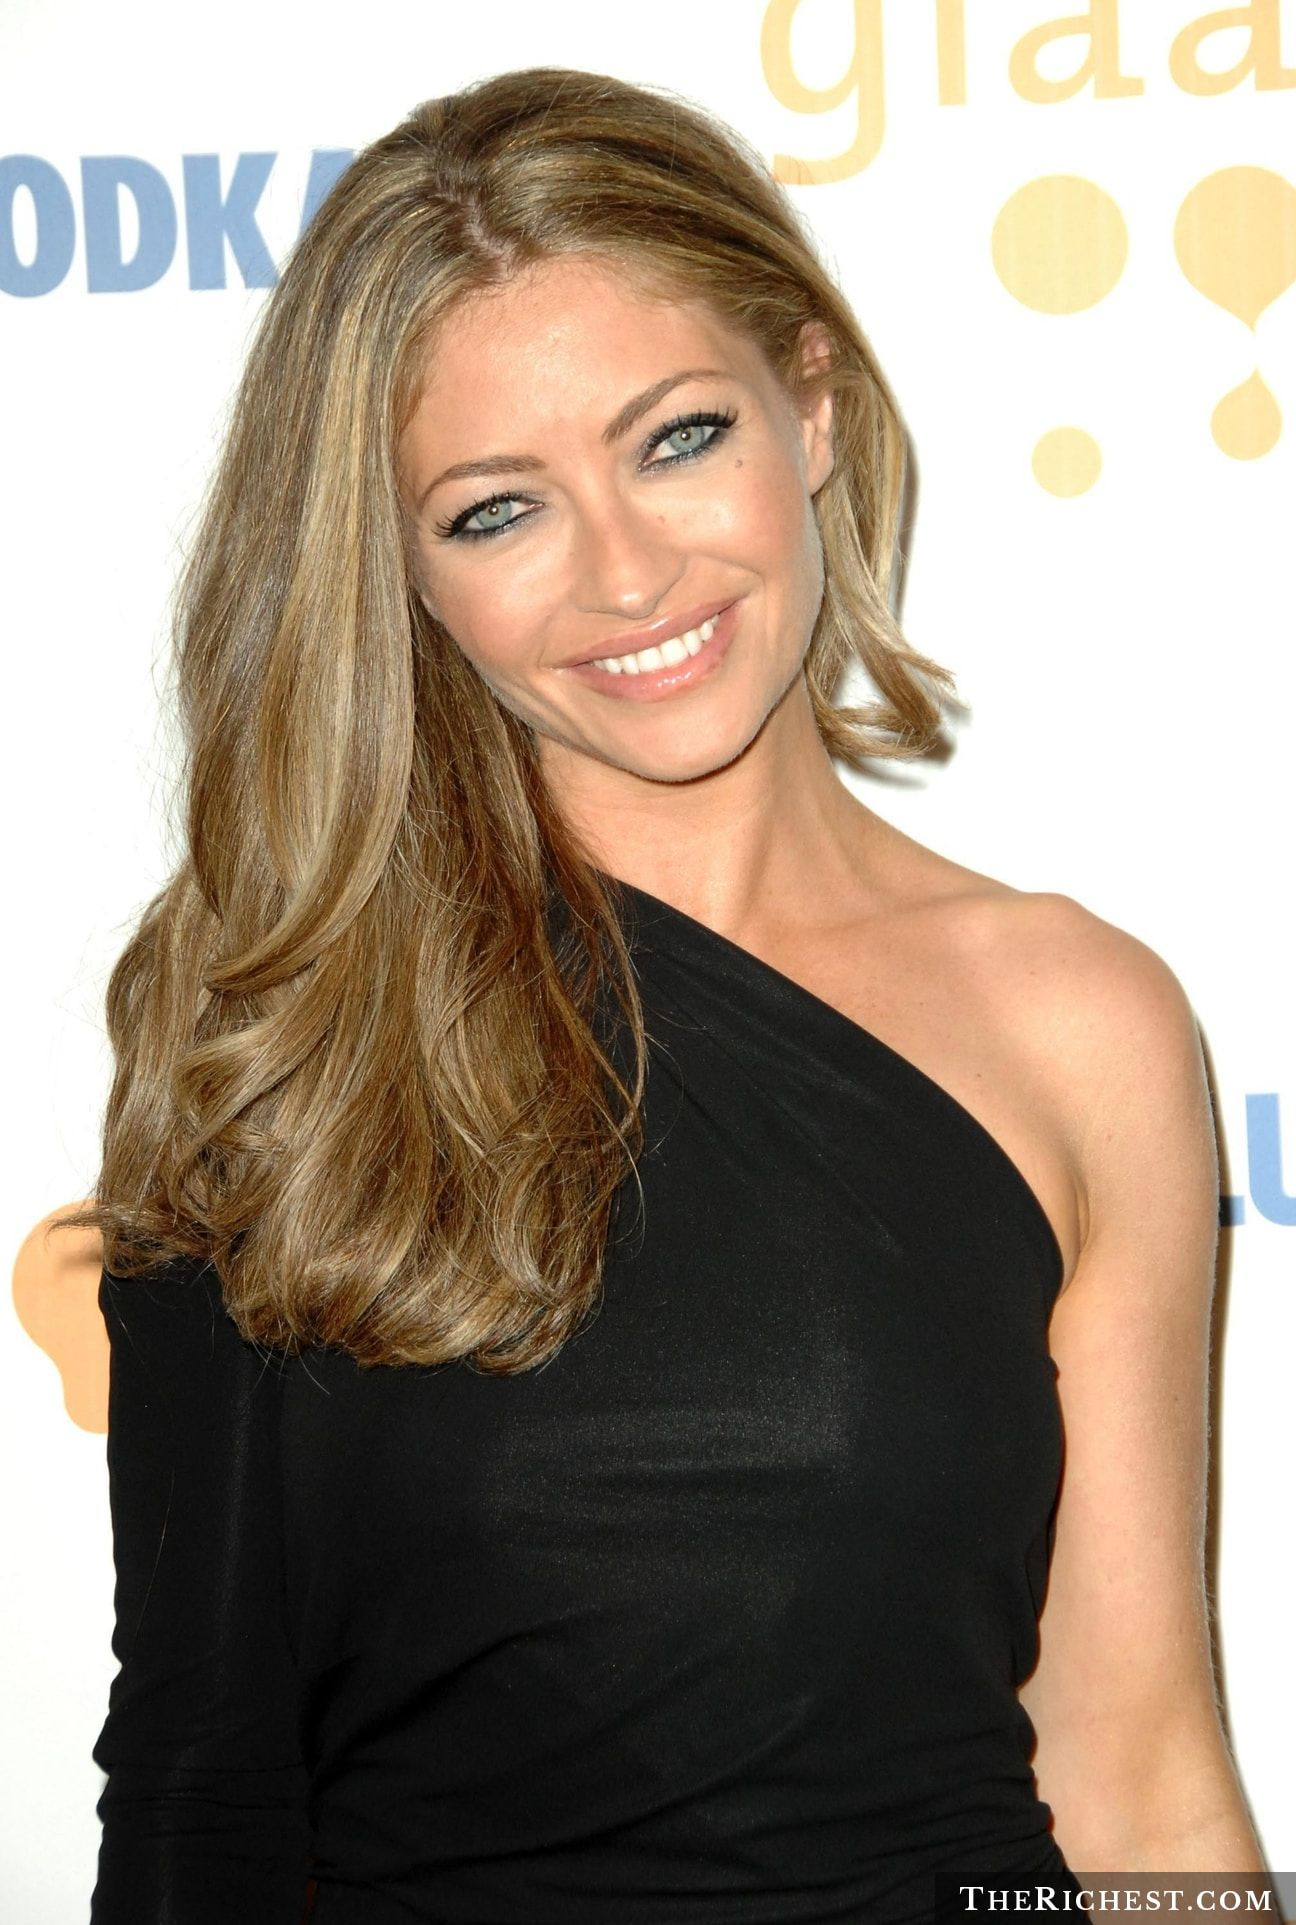 Rebecca gayheart celebrity pictures pinterest rebecca gayheart